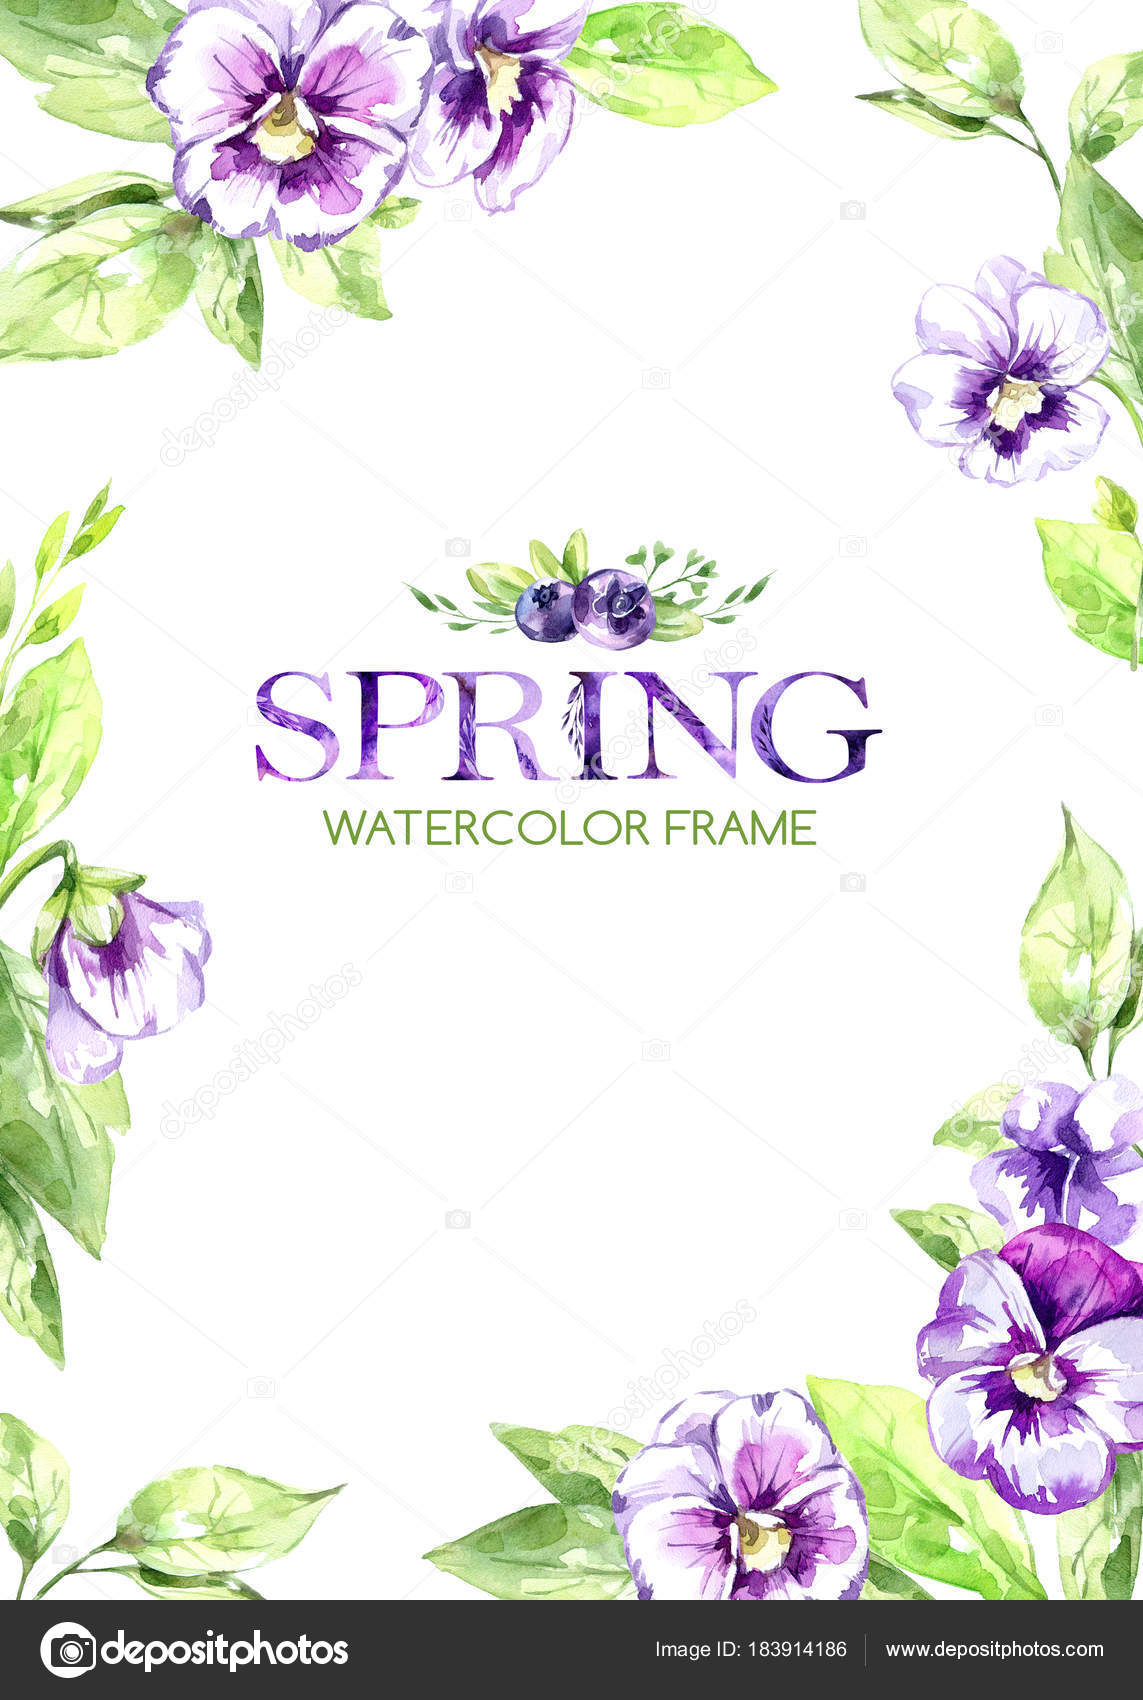 hand painted frame with watercolor spring flowers and leaves